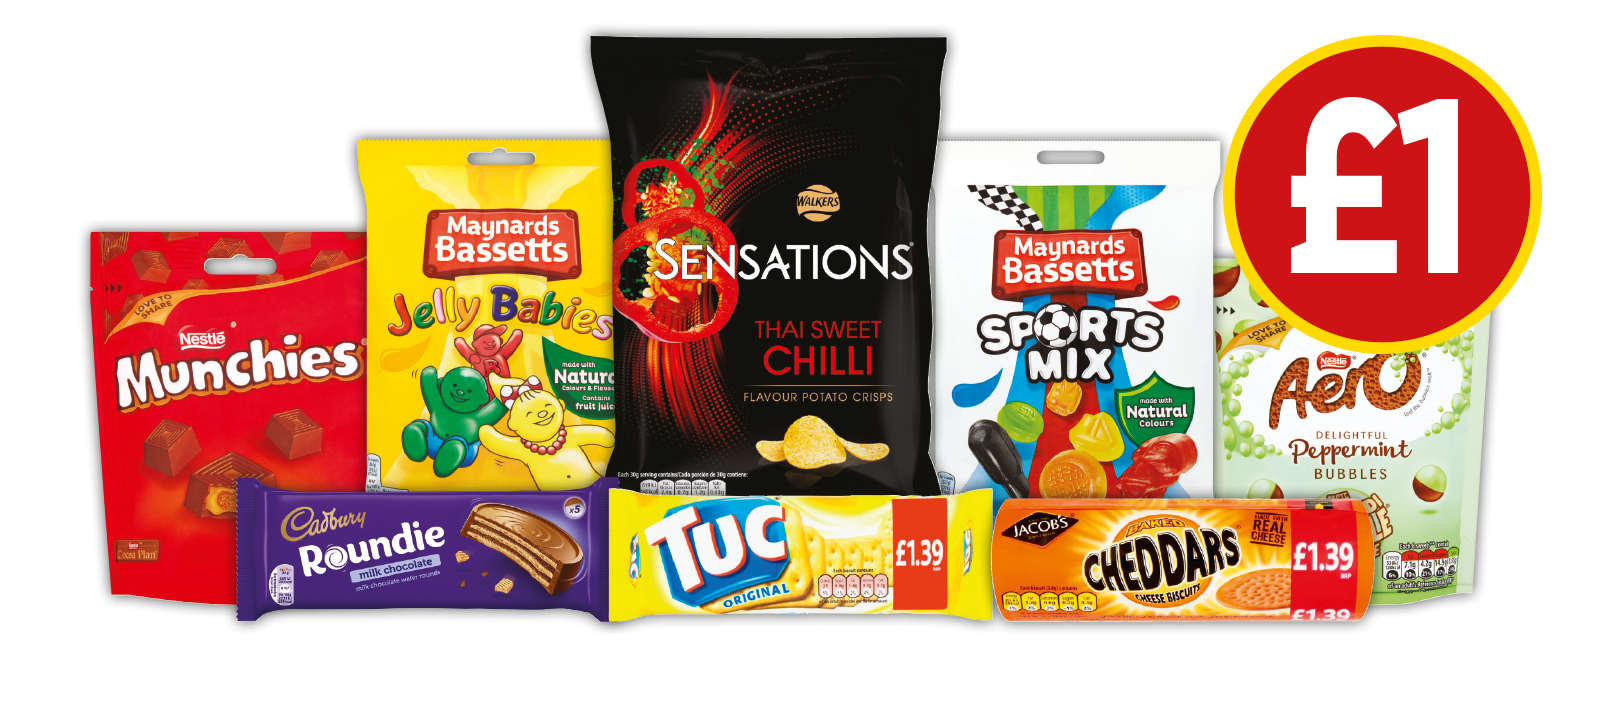 £1 DEALS: Maynard Bassetts Sportsmix, Maynard Bassetts Jelly Babies, Aero Delightful Peppermint Bubbles Pouch, Munchies Pouch, Walkers Sensations Thai Sweet Chilli, Cadbury Roundies Chocolate Multipack, Jacobs Tuc Cracker, Jacobs Cheddars - £1 at Budgens